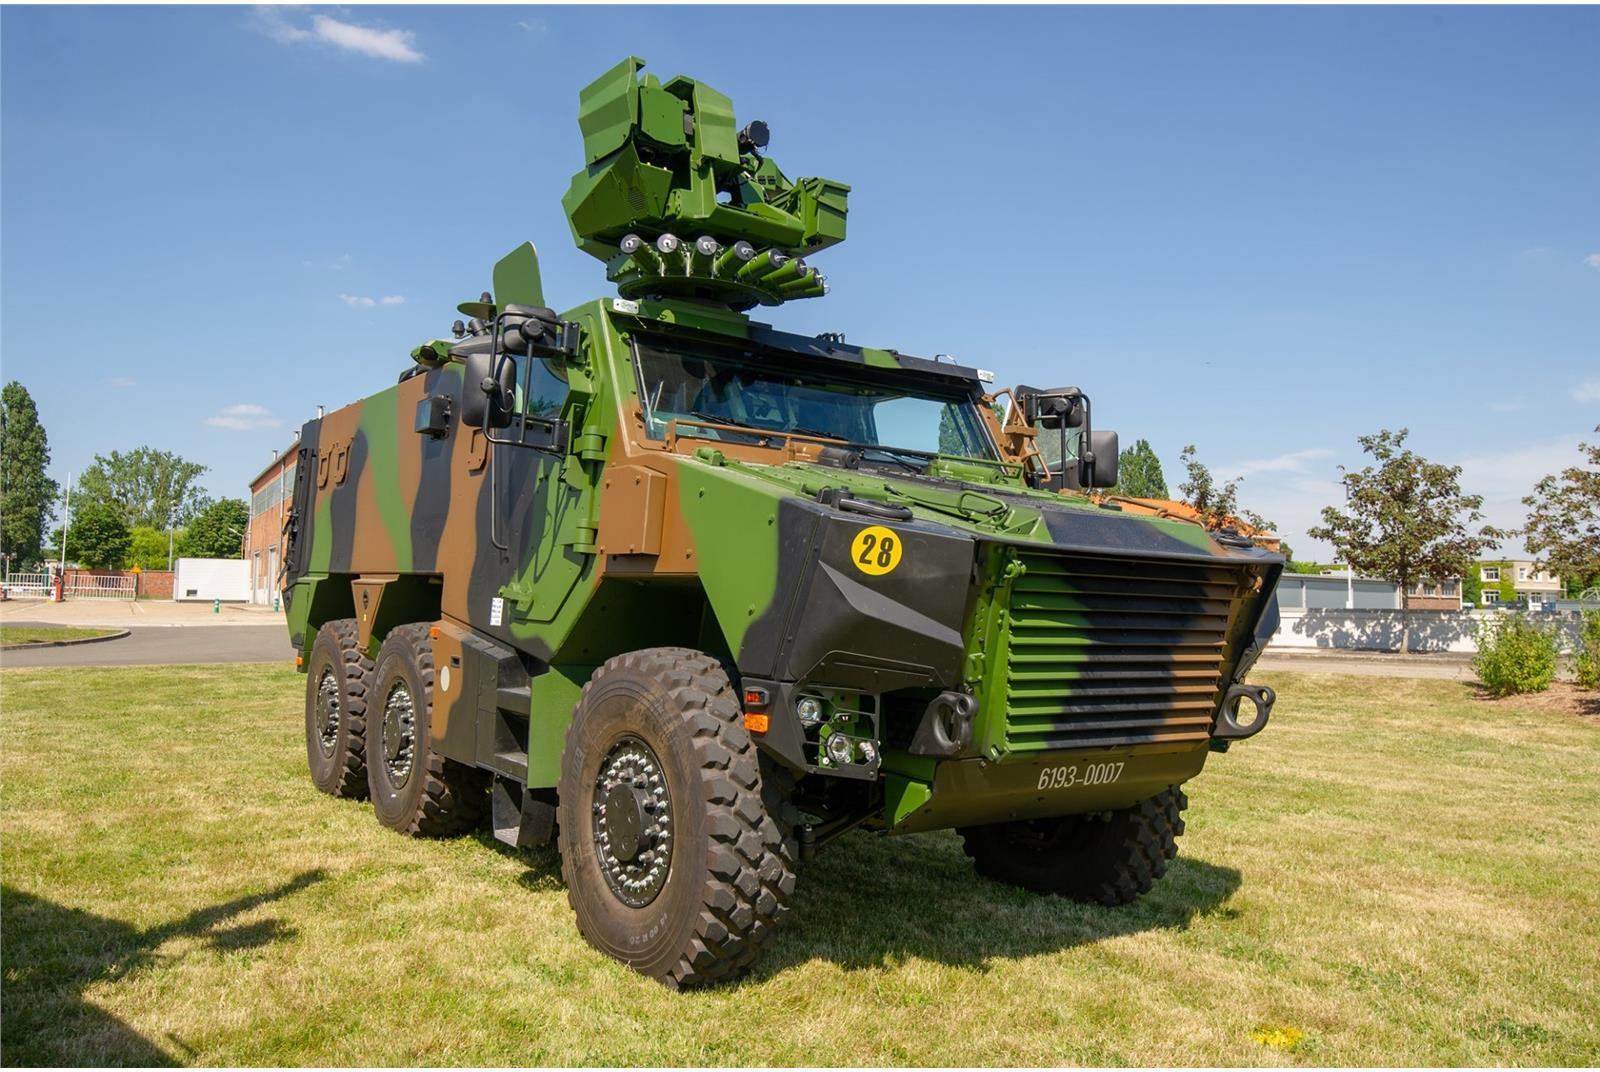 French Army VBMR Griffon Multi-Role Armored Vehicle